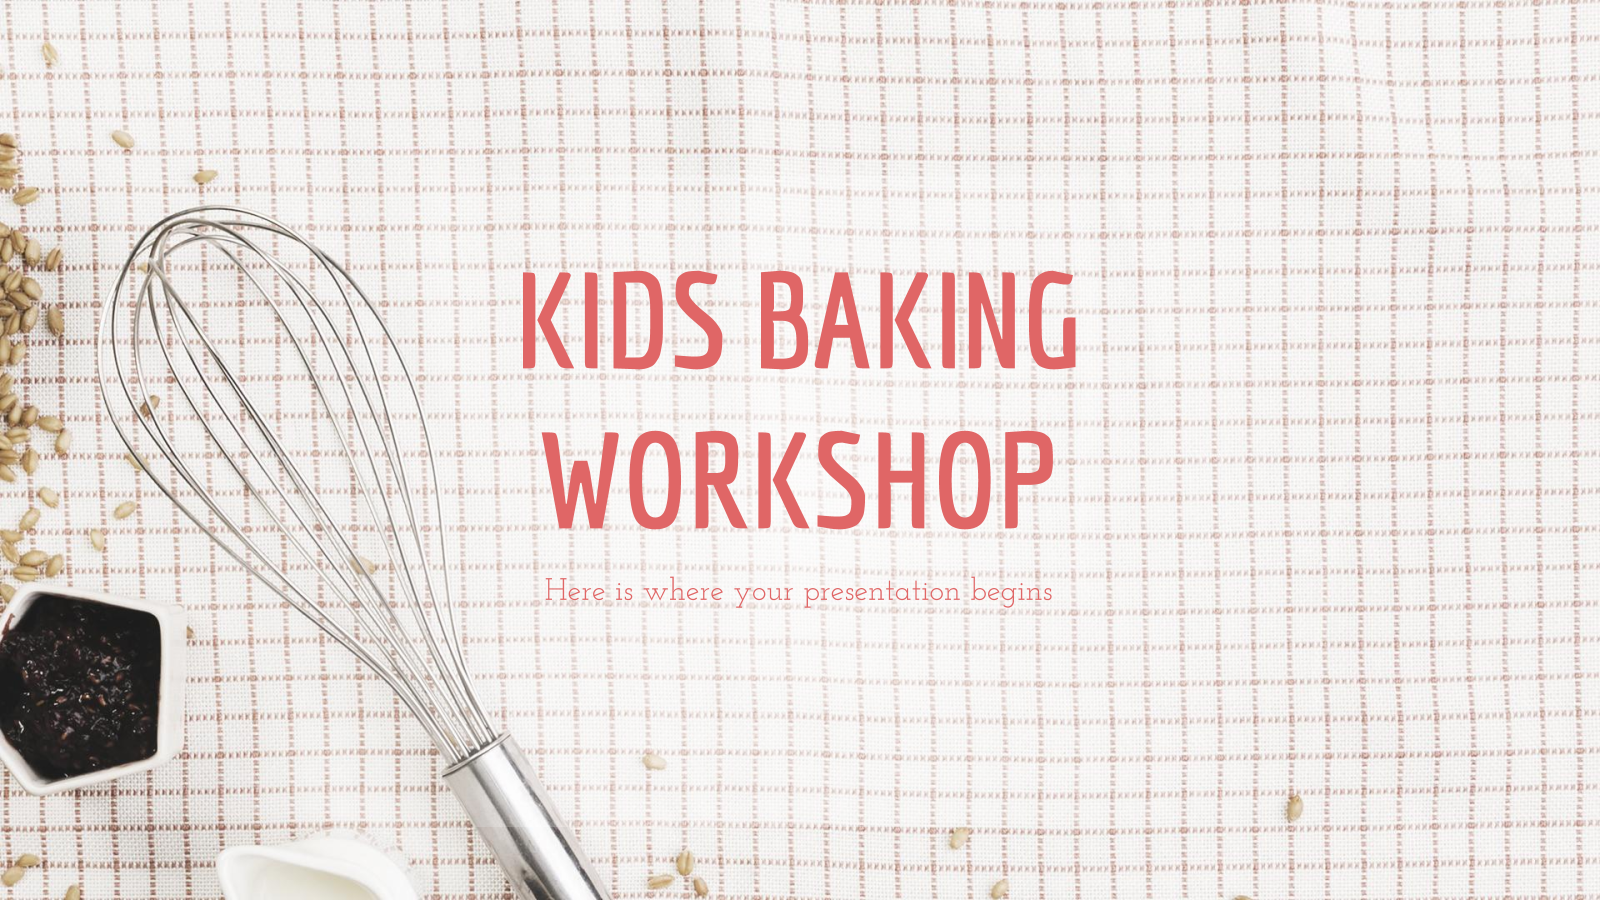 Kids Baking Workshop presentation template